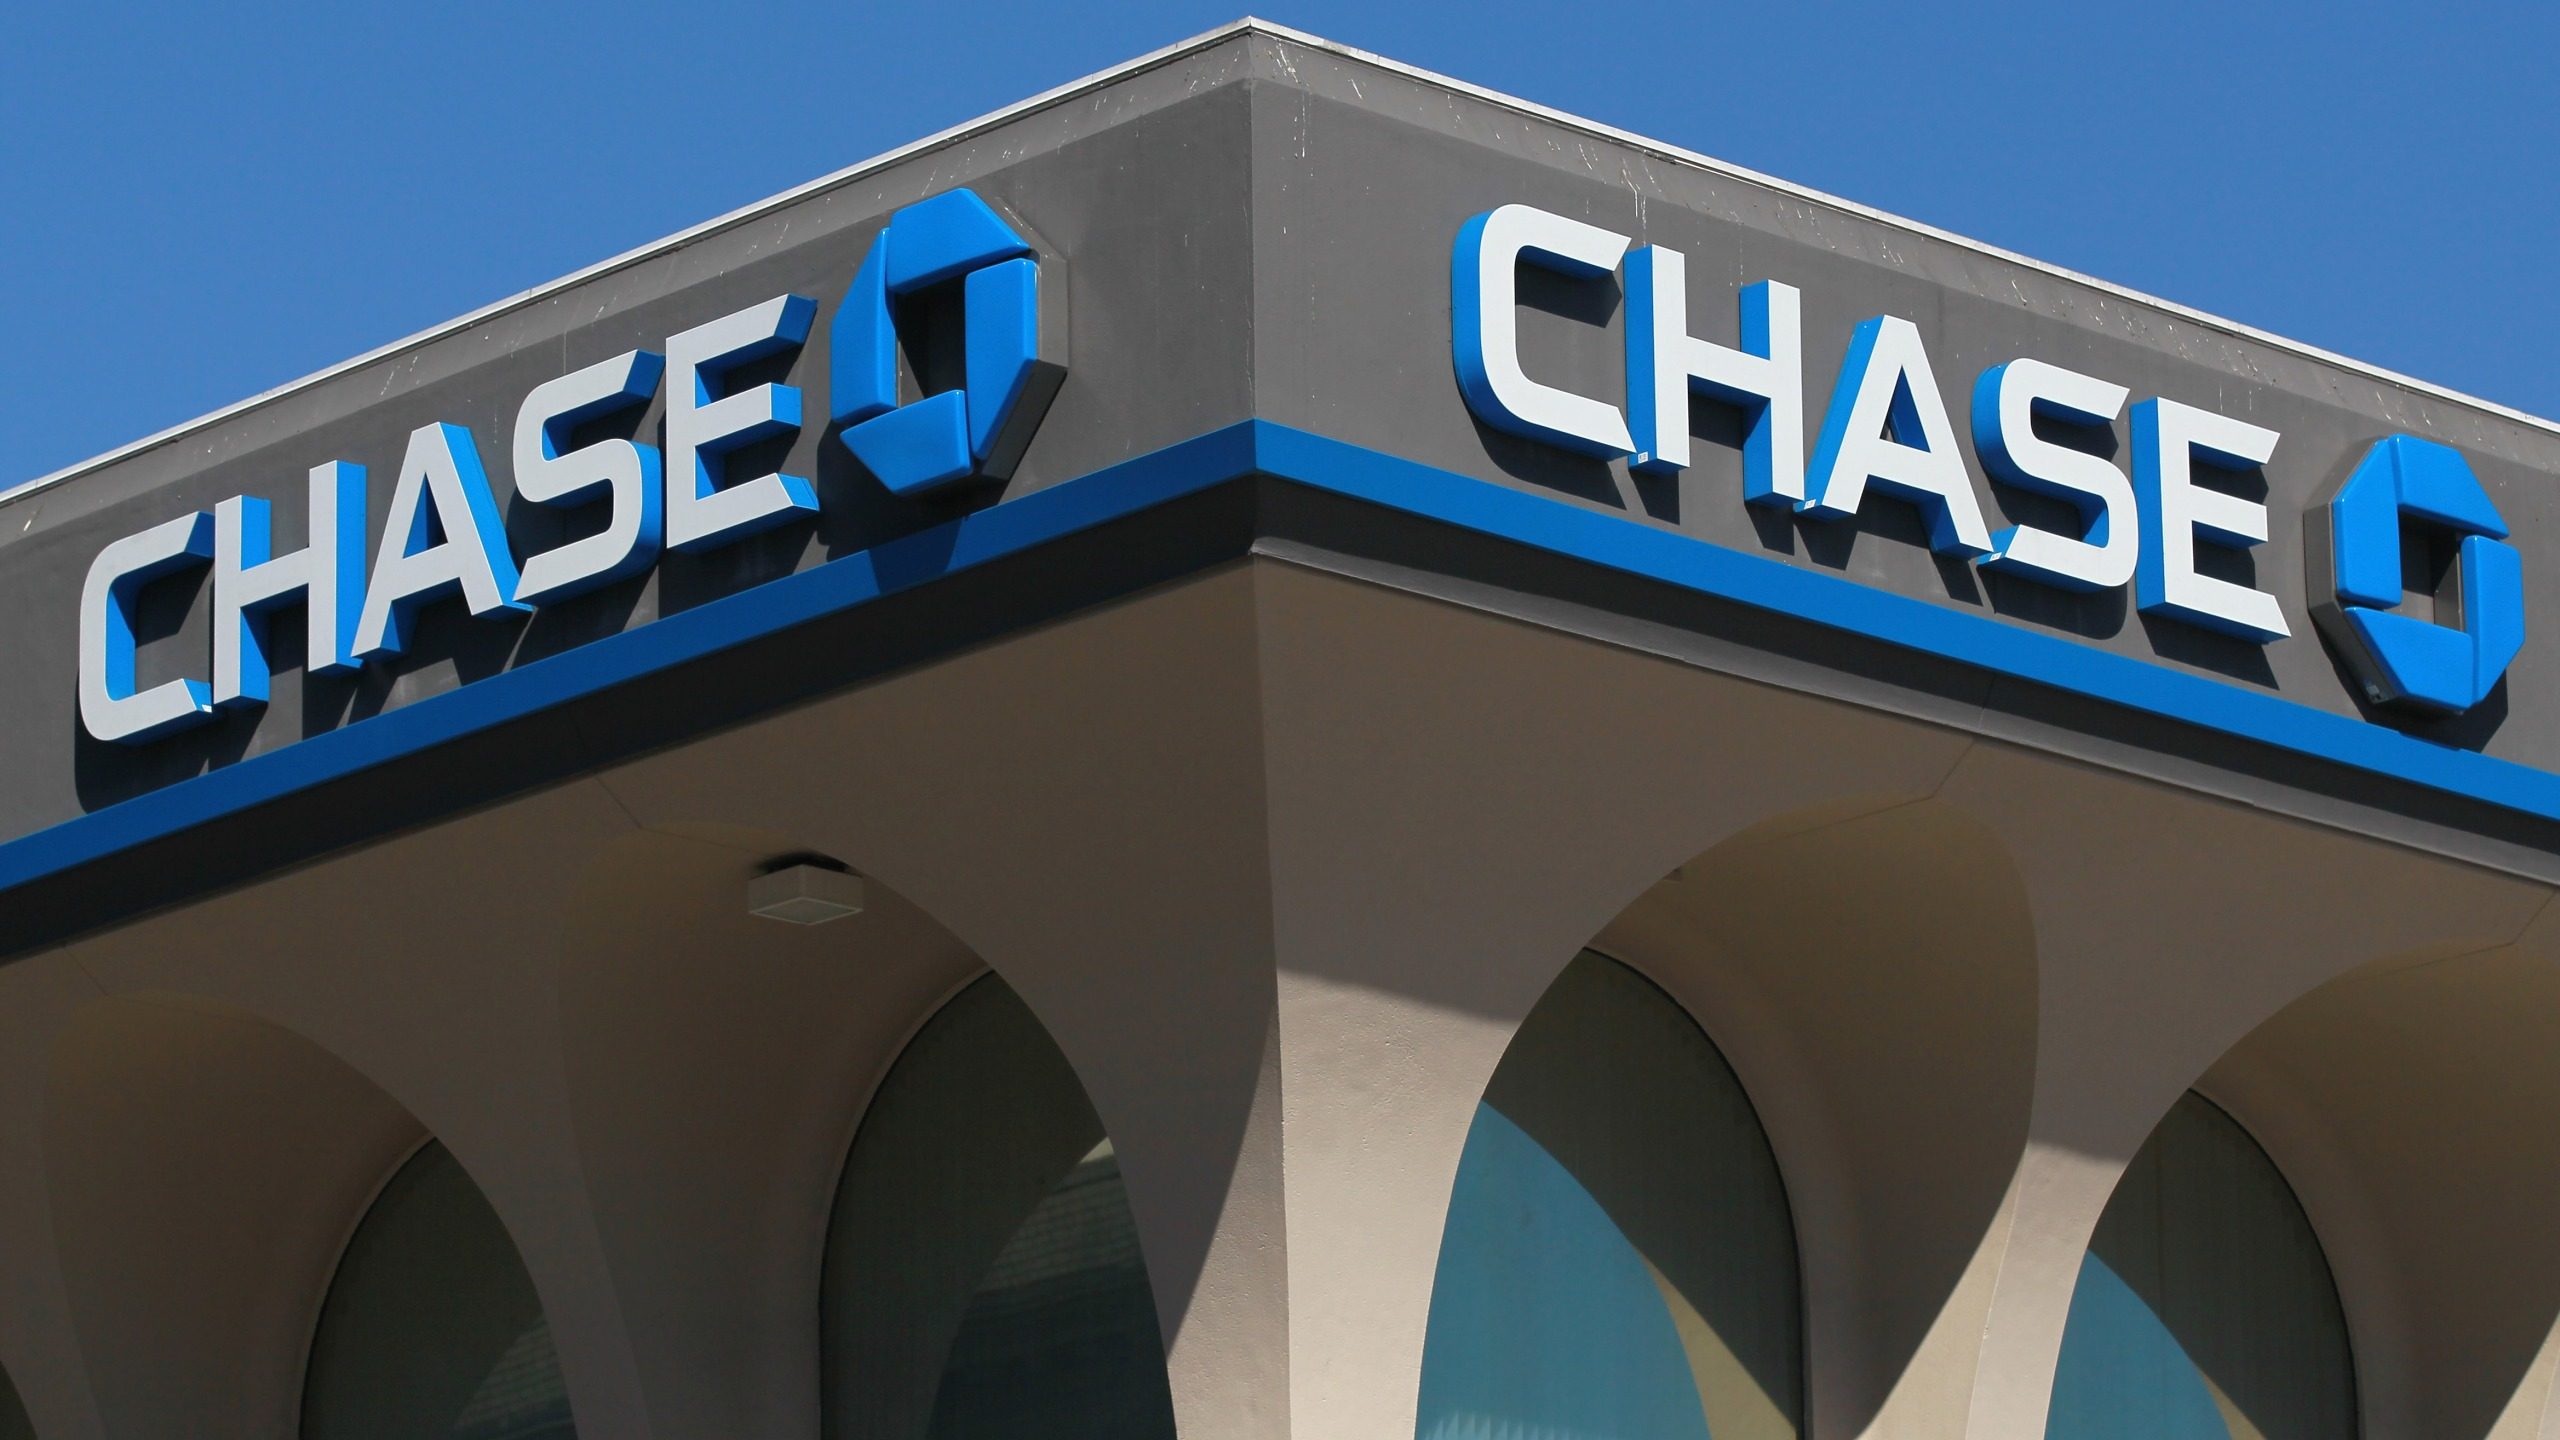 This file photo shows the Chase logo on Oct. 13, 2010 in San Francisco. (Justin Sullivan/Getty Images)